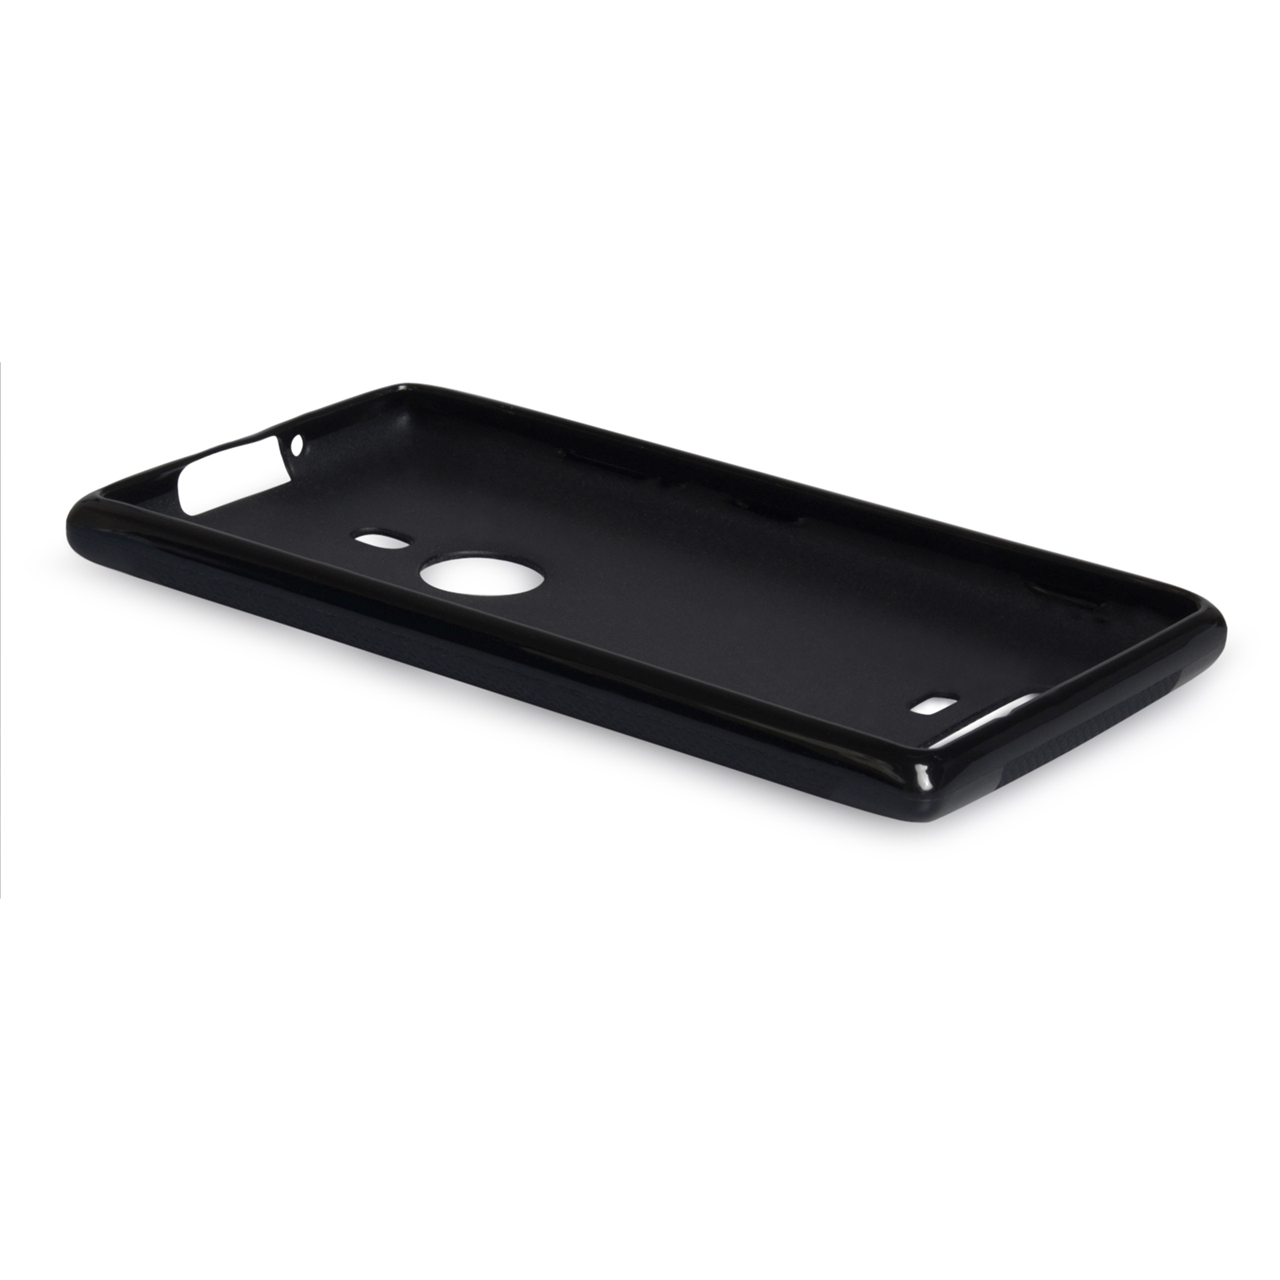 YouSave Accessories Nokia Lumia 925 X-Line Gel Case - Black